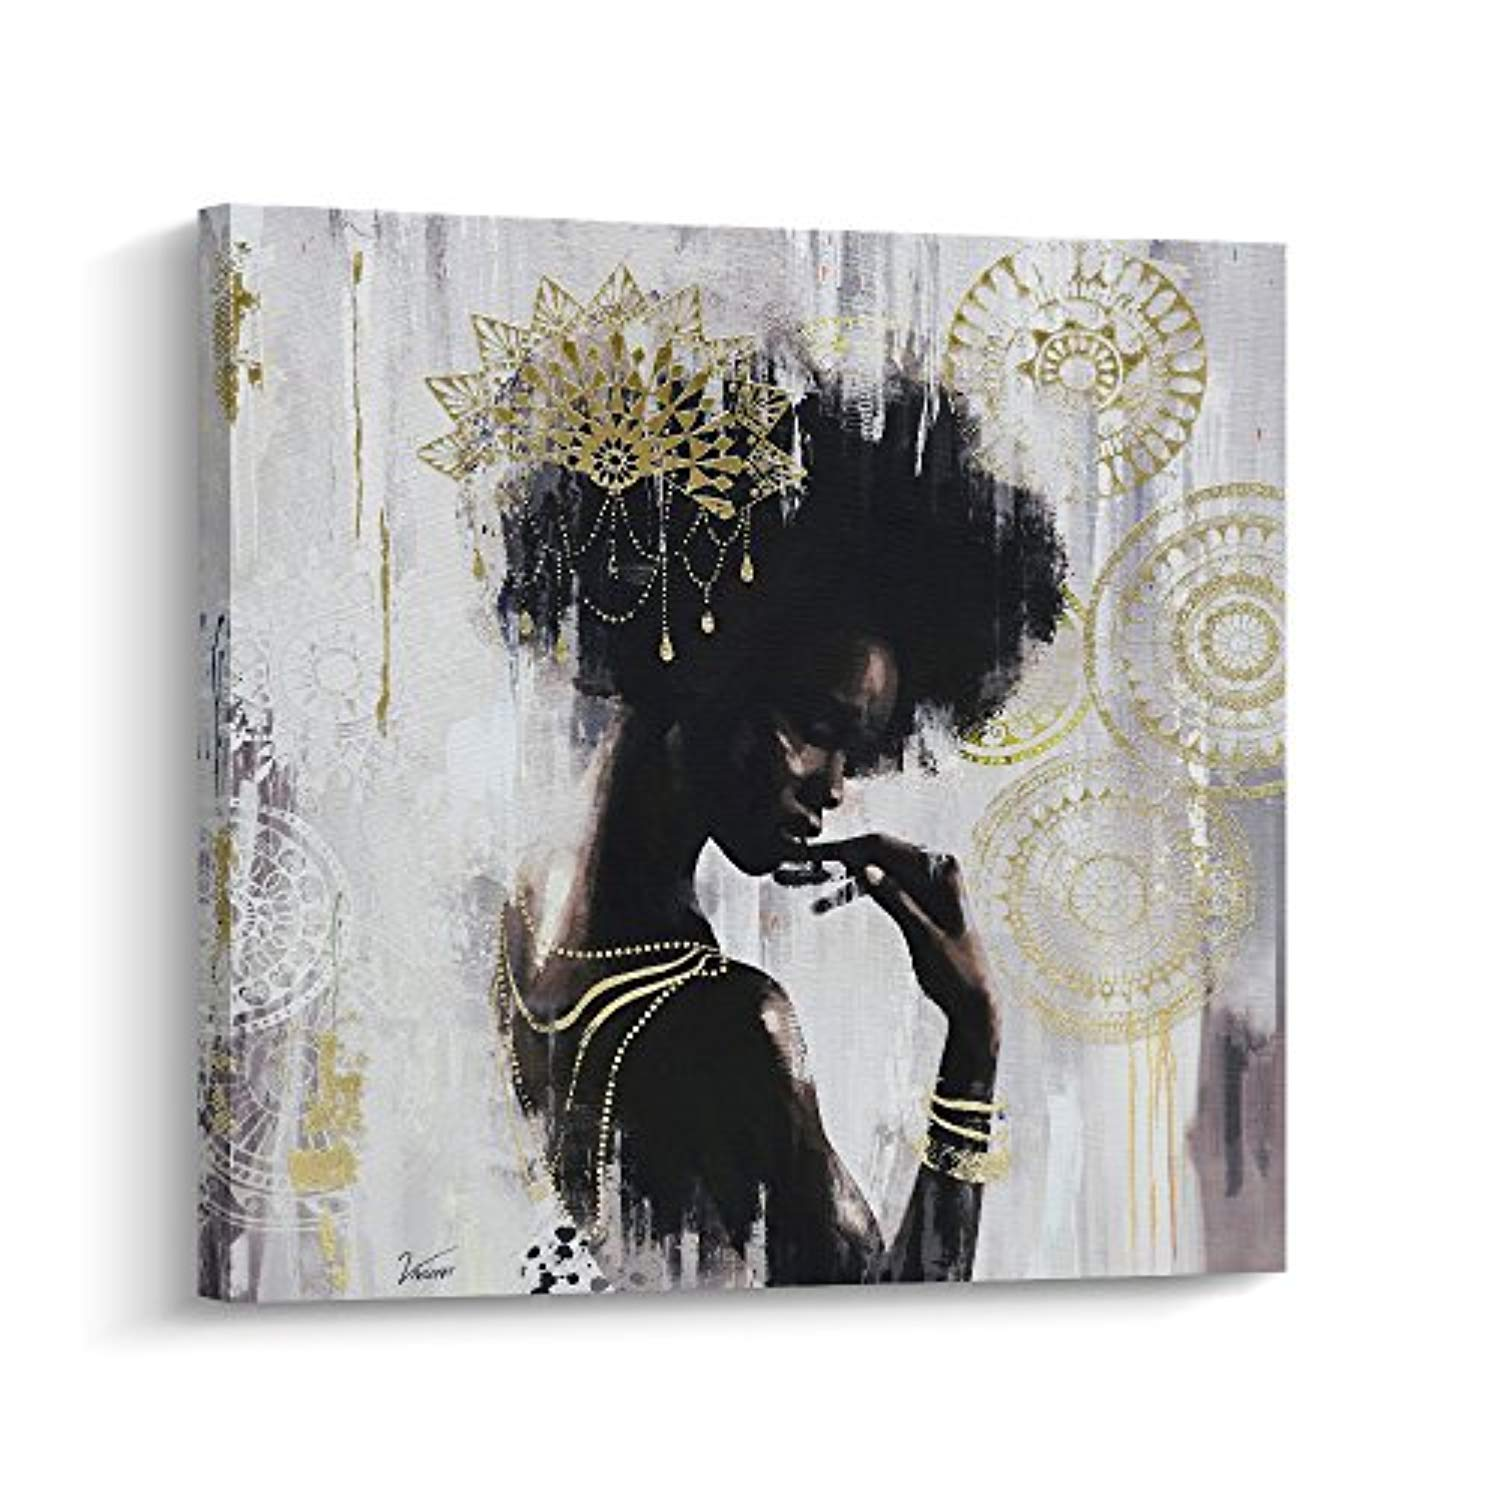 Pi Art African American Wall Decor Canvas Wall Art, Gold Black Art on Canvas, Stretched and Framed Wall Art for Living Room (80x80cm, A) - Ufumbuzi - Home